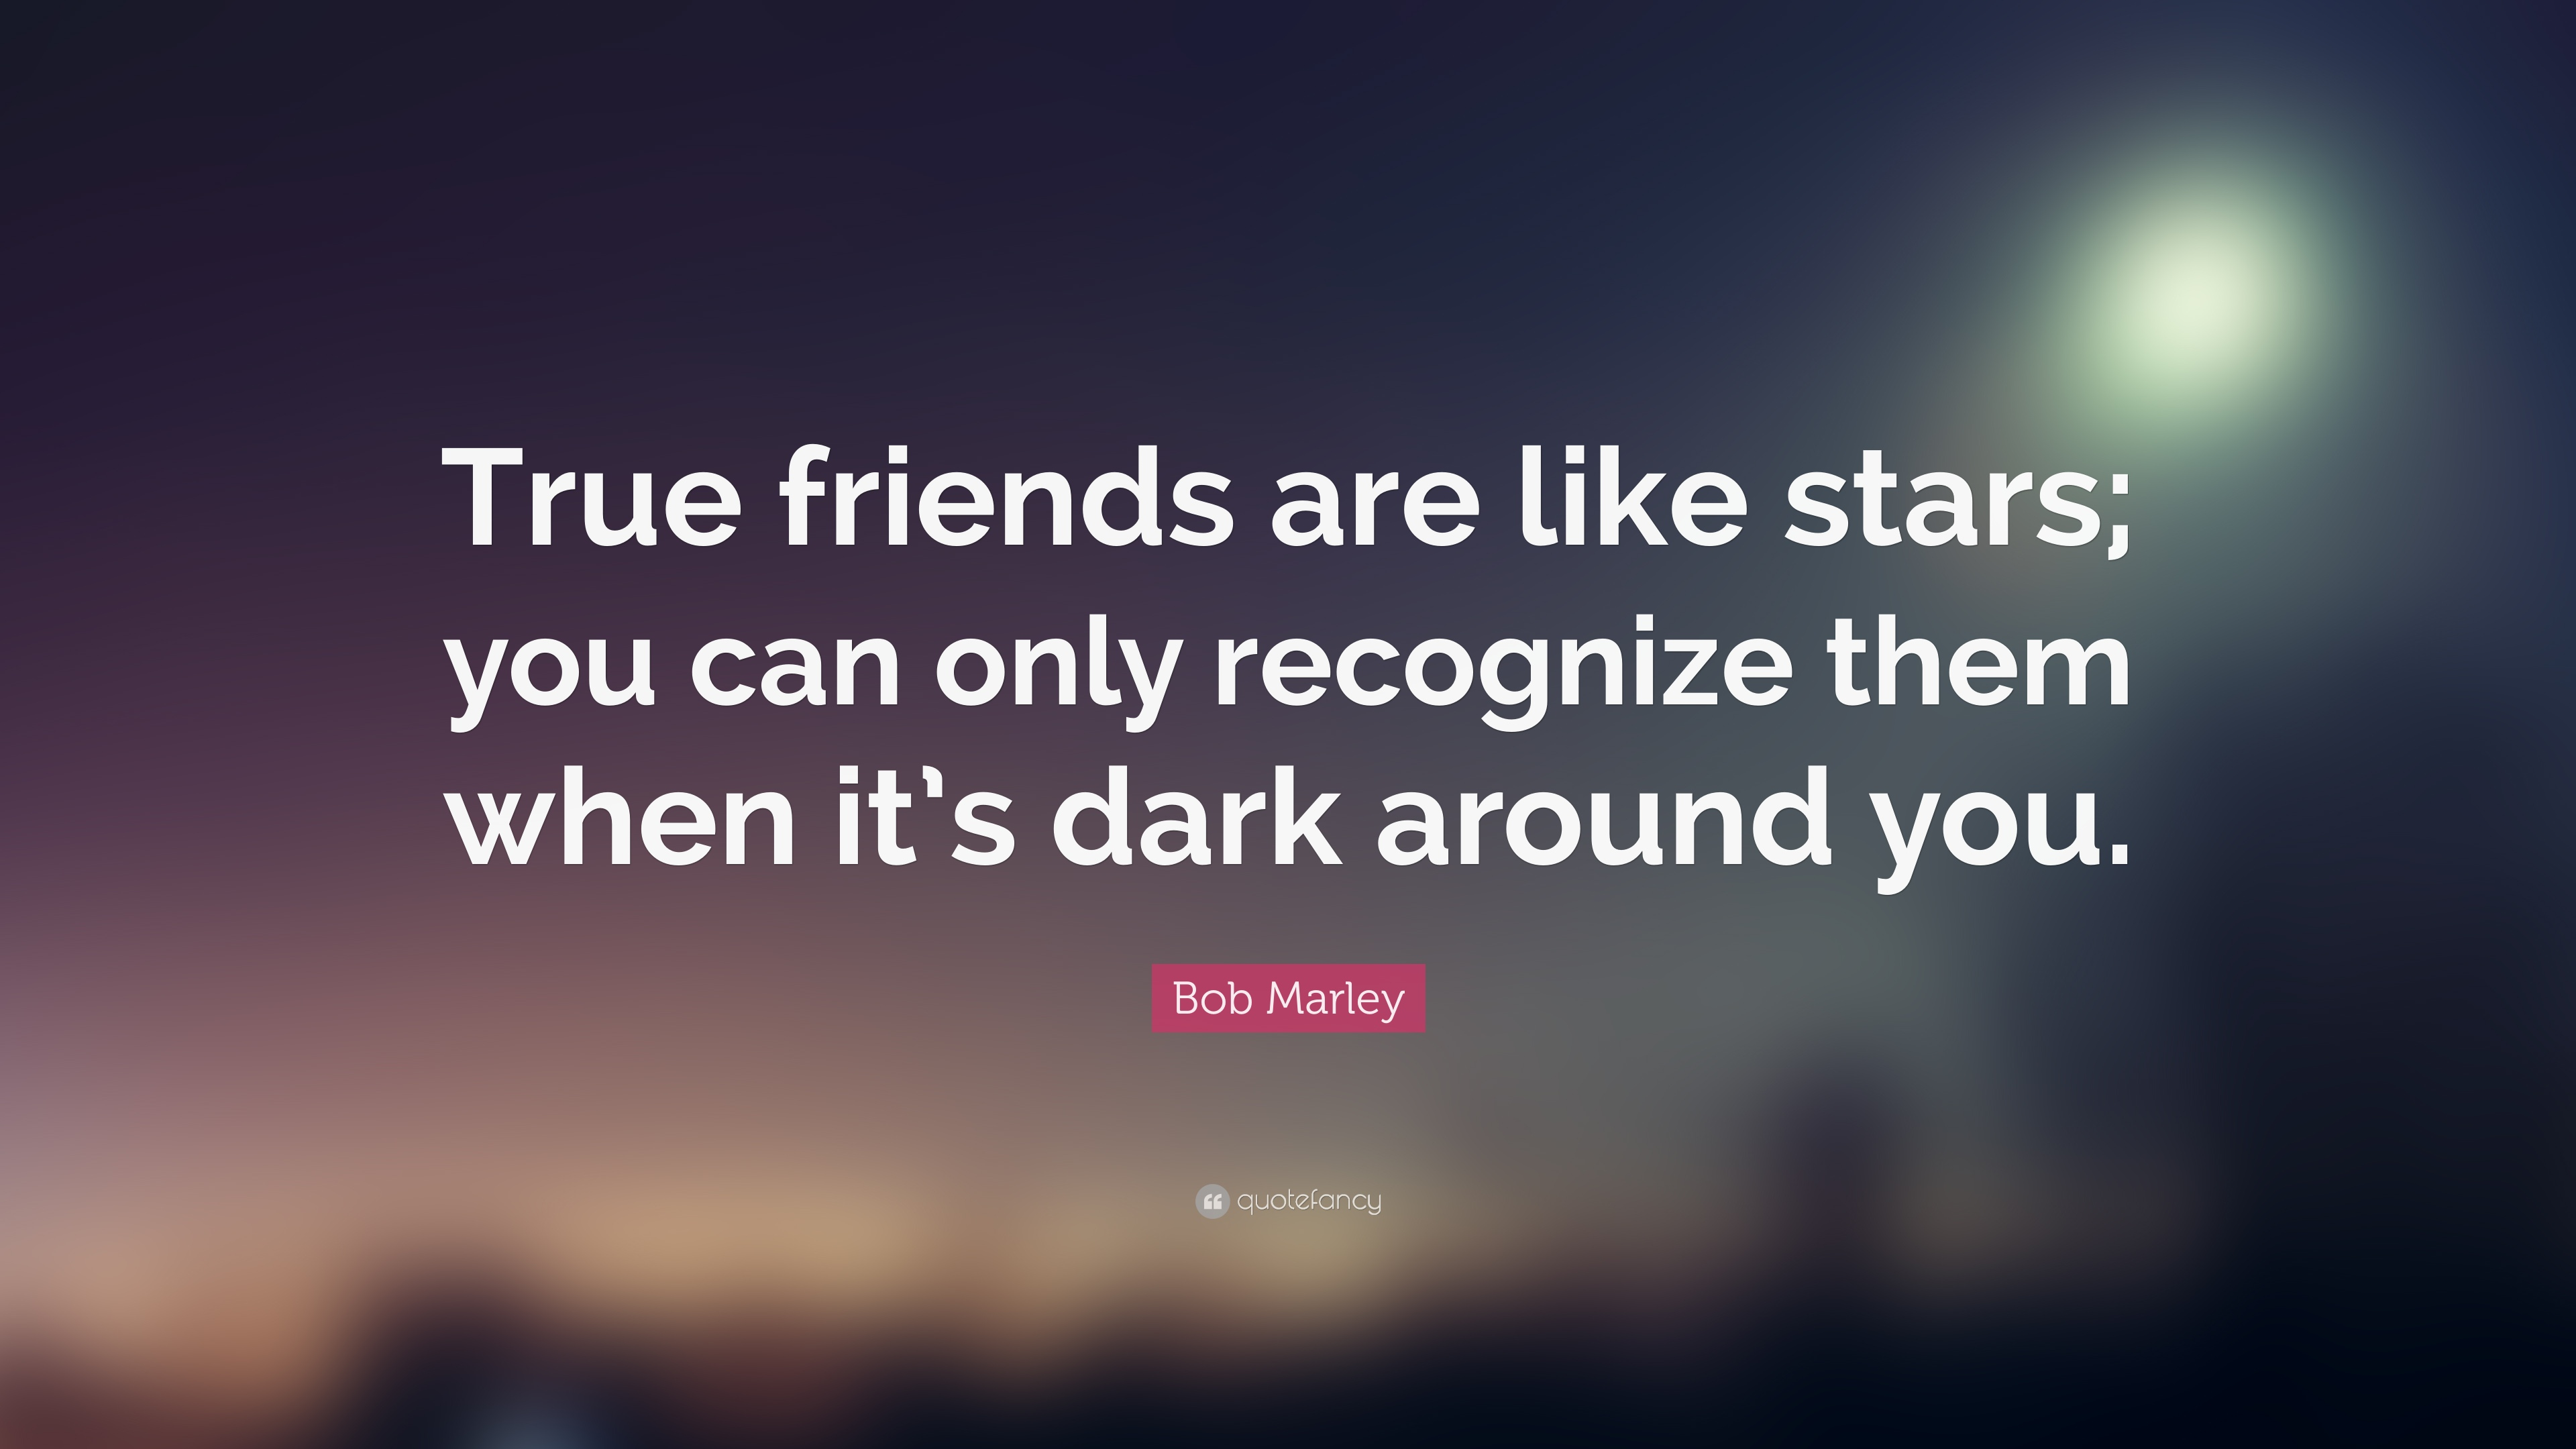 Bob Marley Quote: U201cTrue Friends Are Like Stars; You Can Only Recognize Them